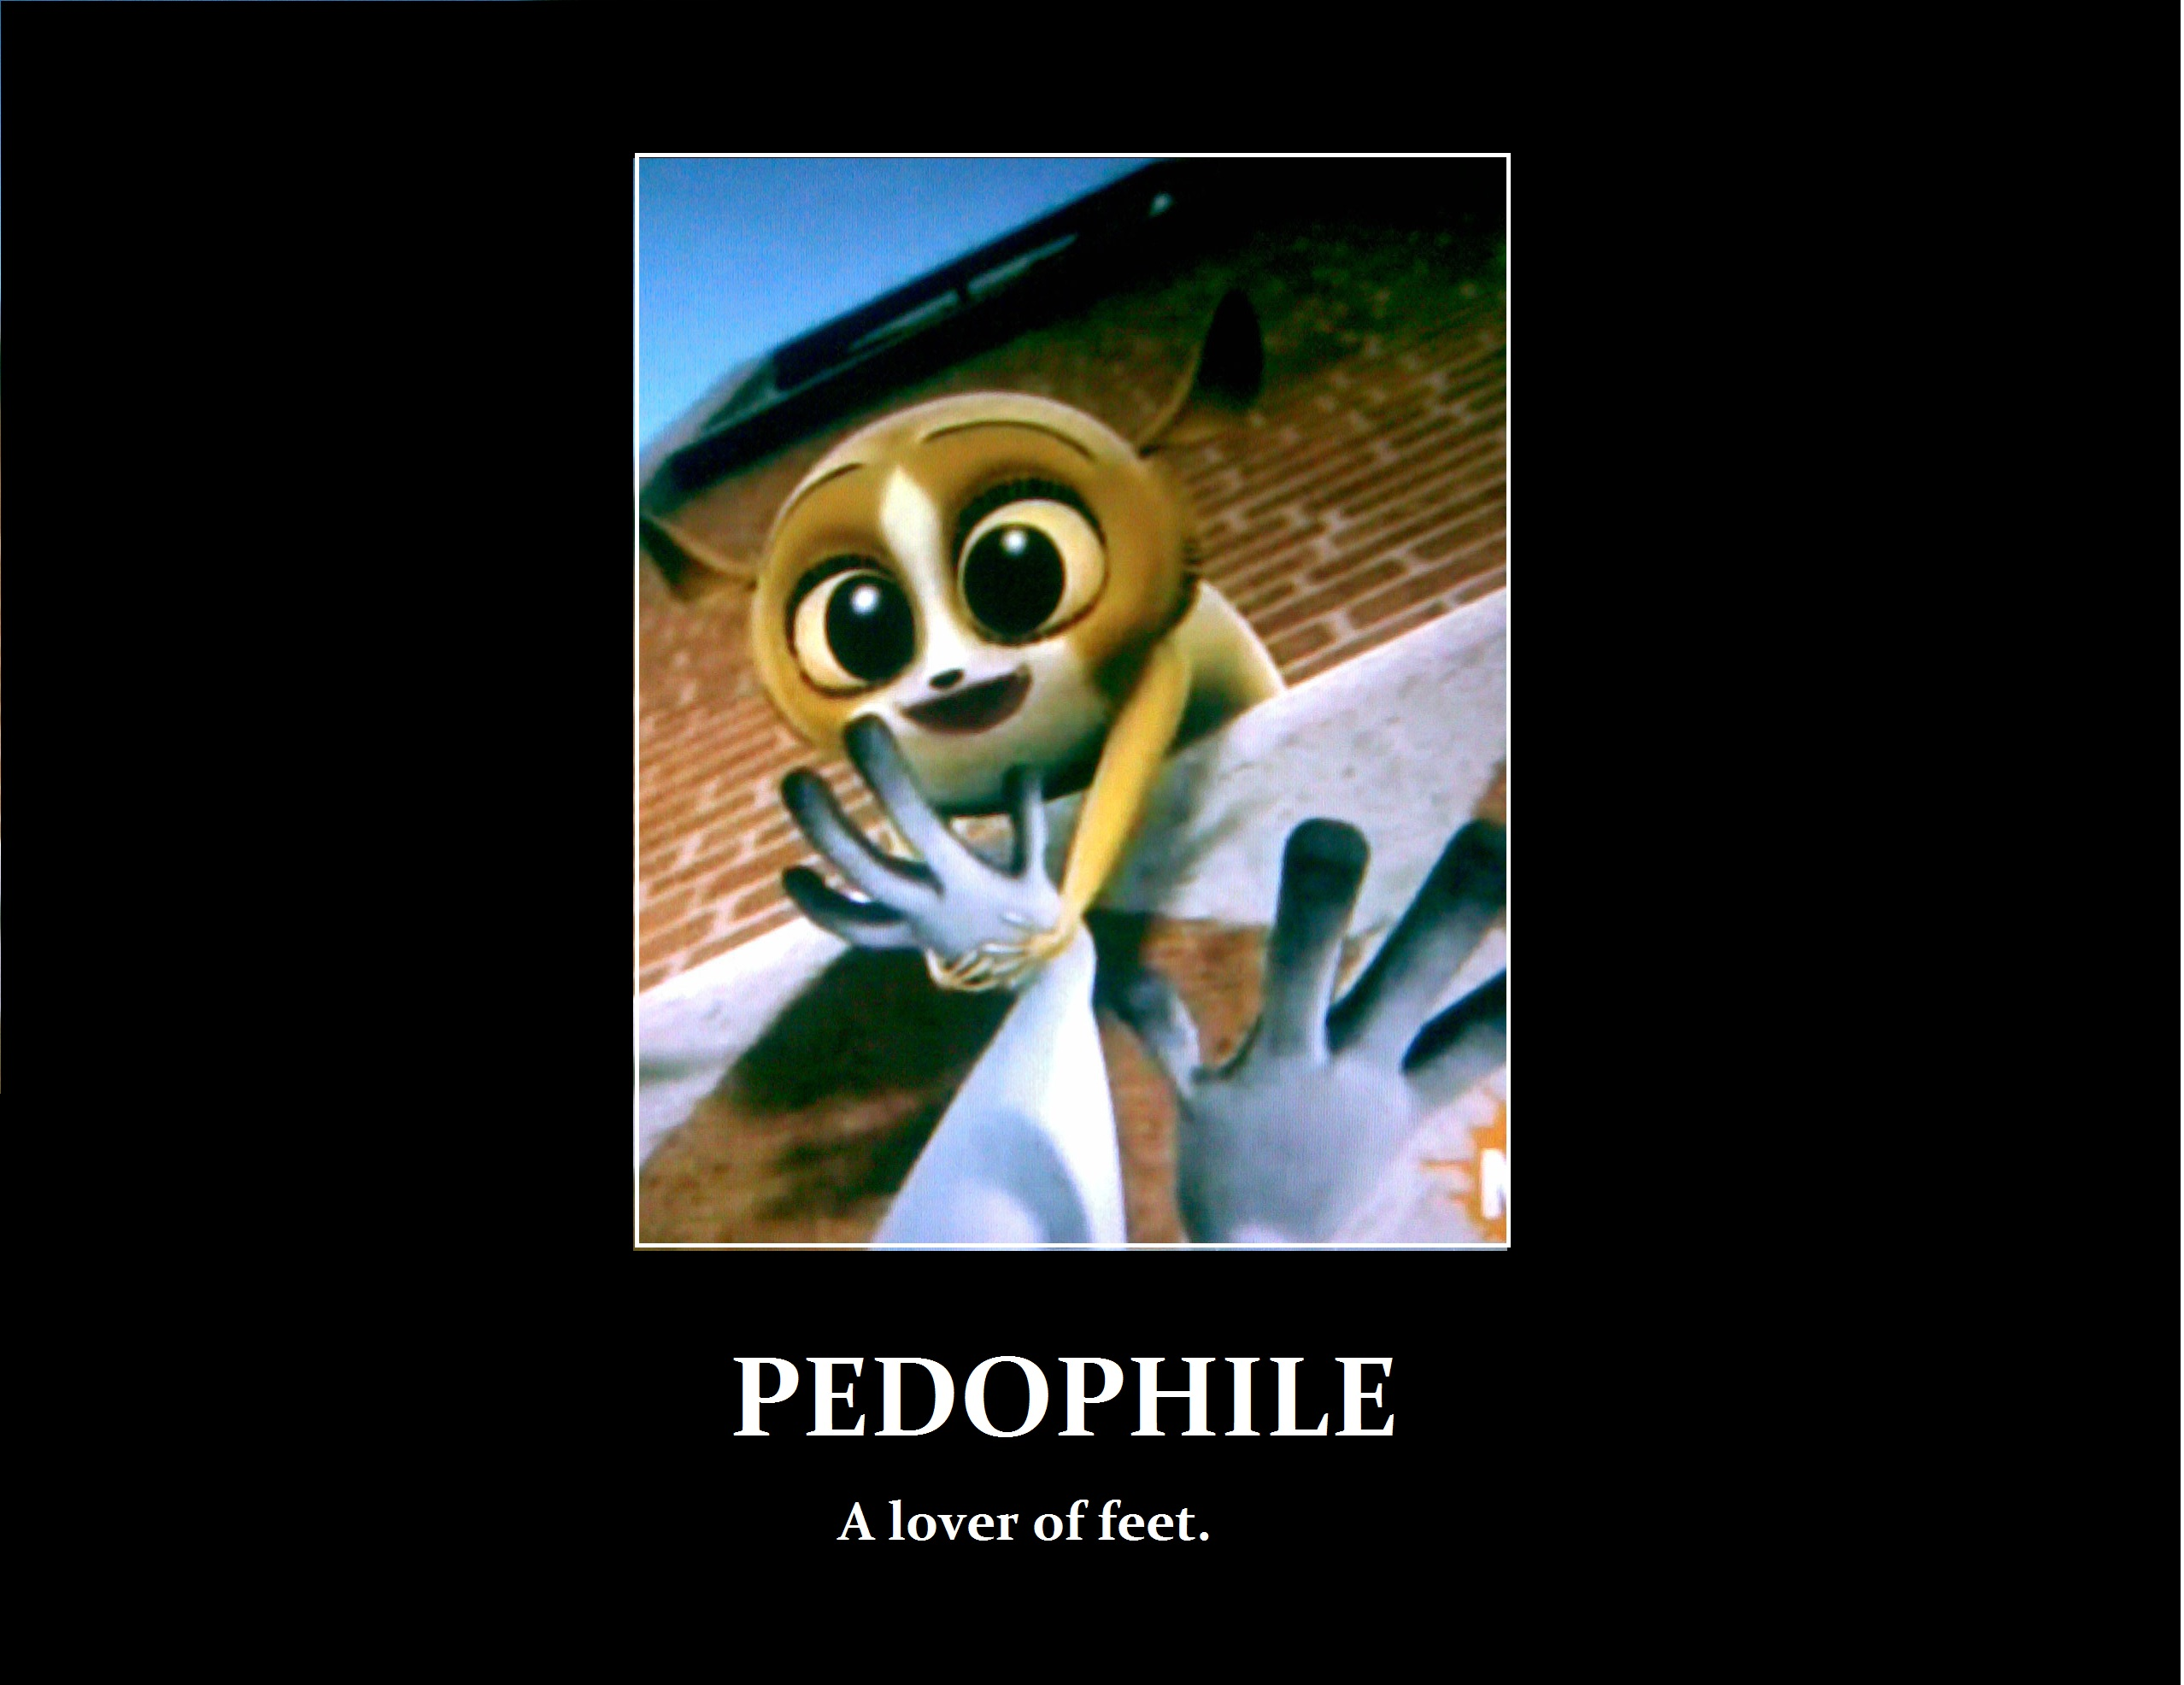 Mort is a pedophile...